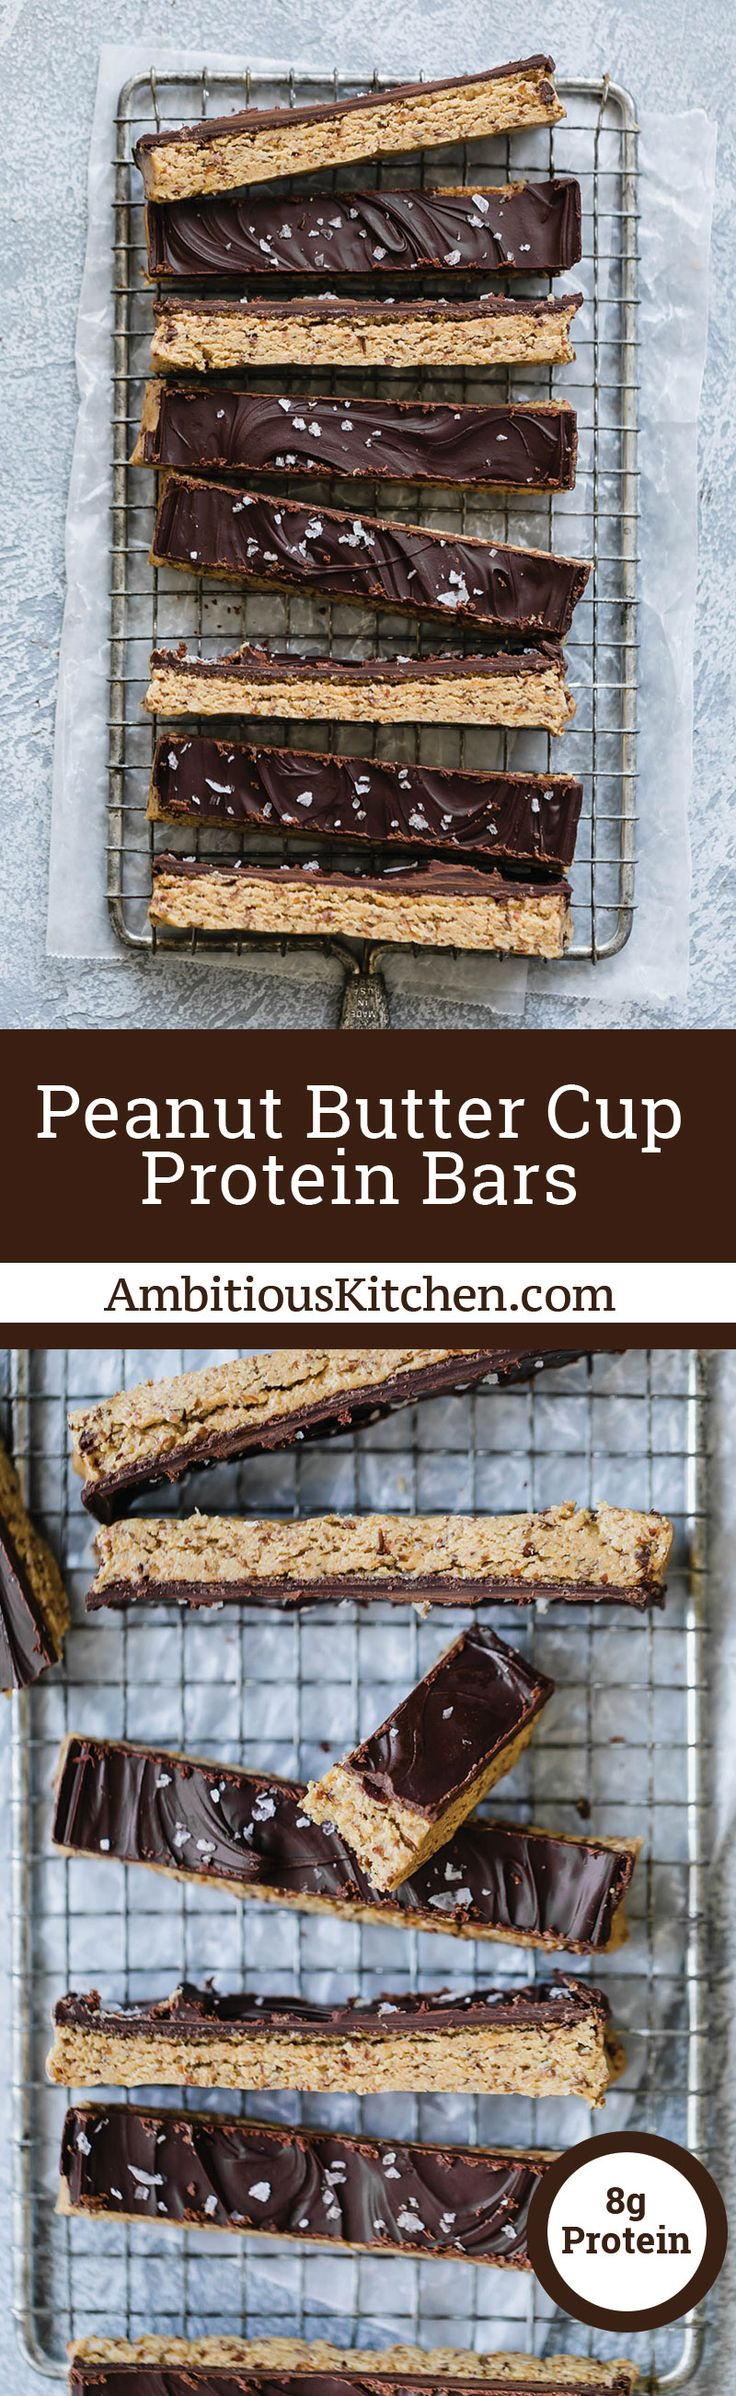 No bake Peanut Butter Cup Protein Bars that taste just like a Reese's. This protein bar recipe will be your new favorites snack to keep in your fridge and enjoy all week long.